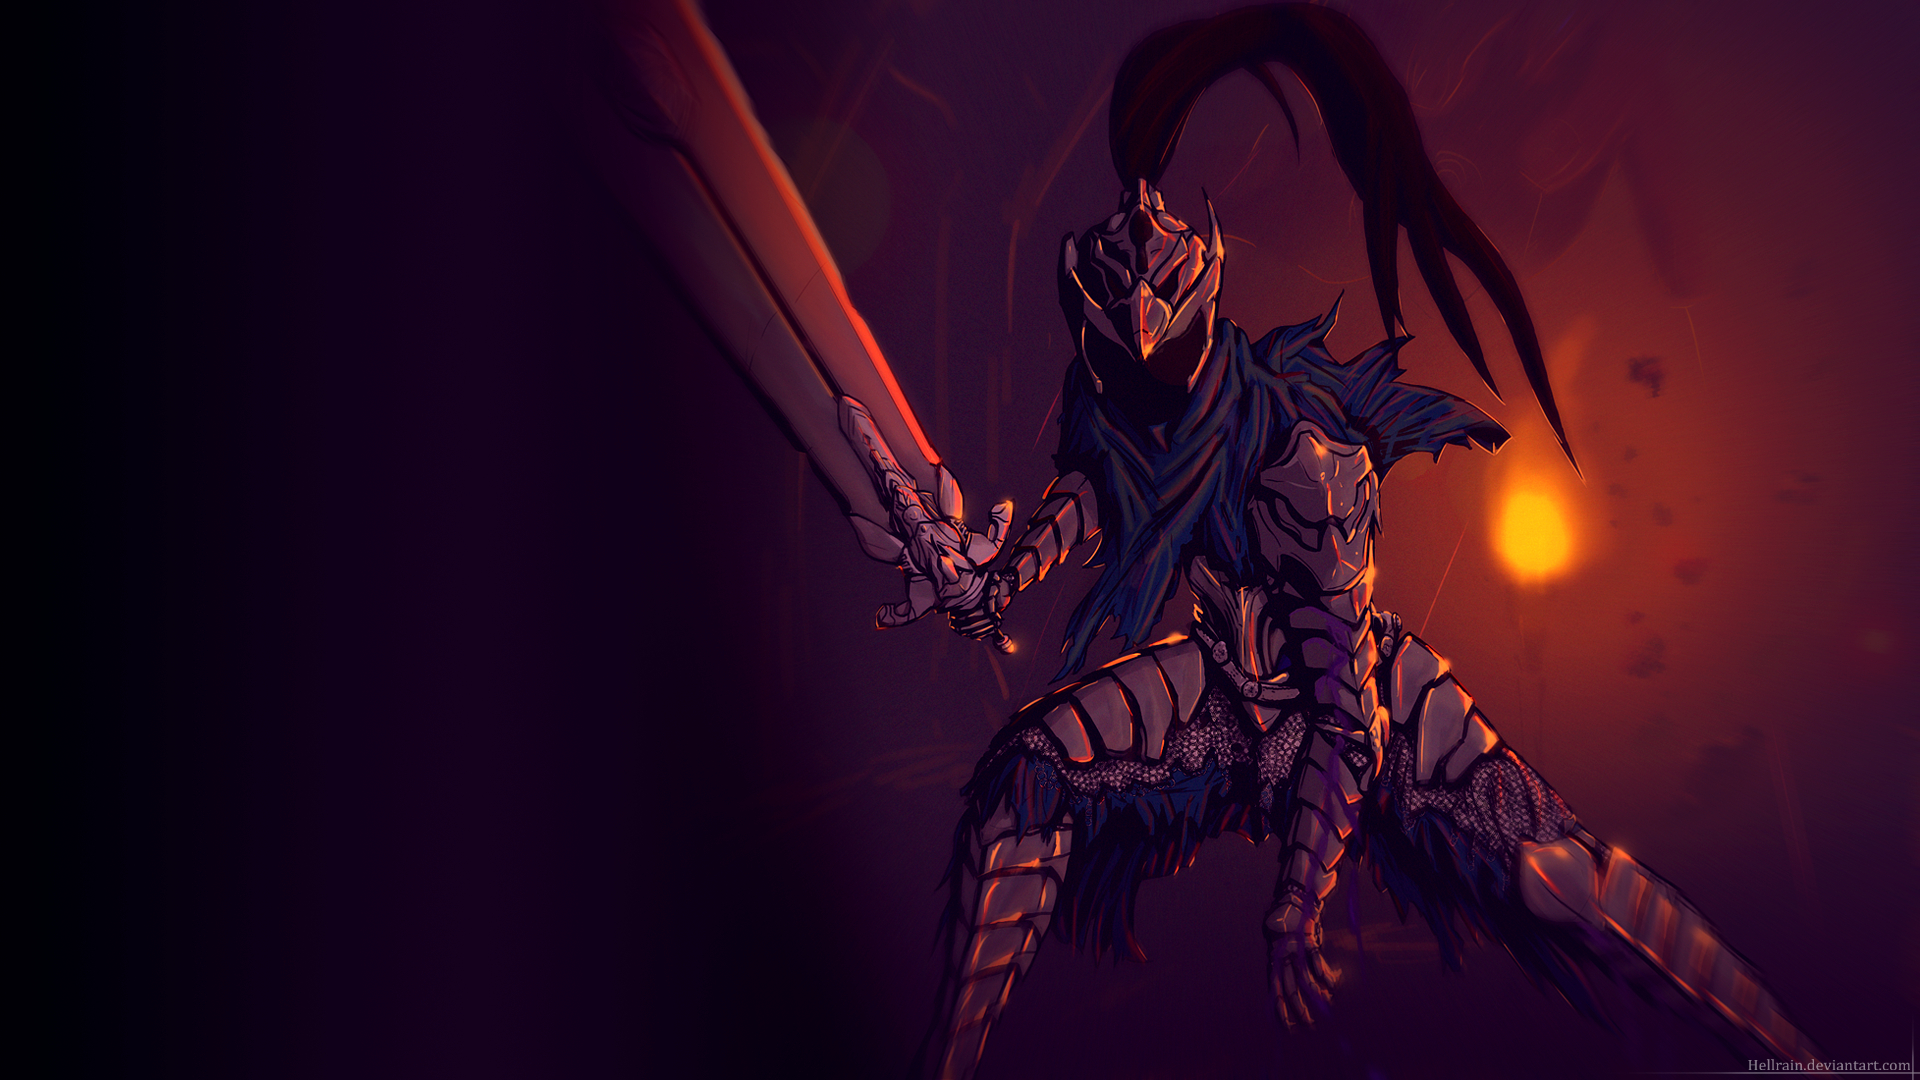 Free Download Wallpaper Artorias Of The Abyss 1920x1080 By